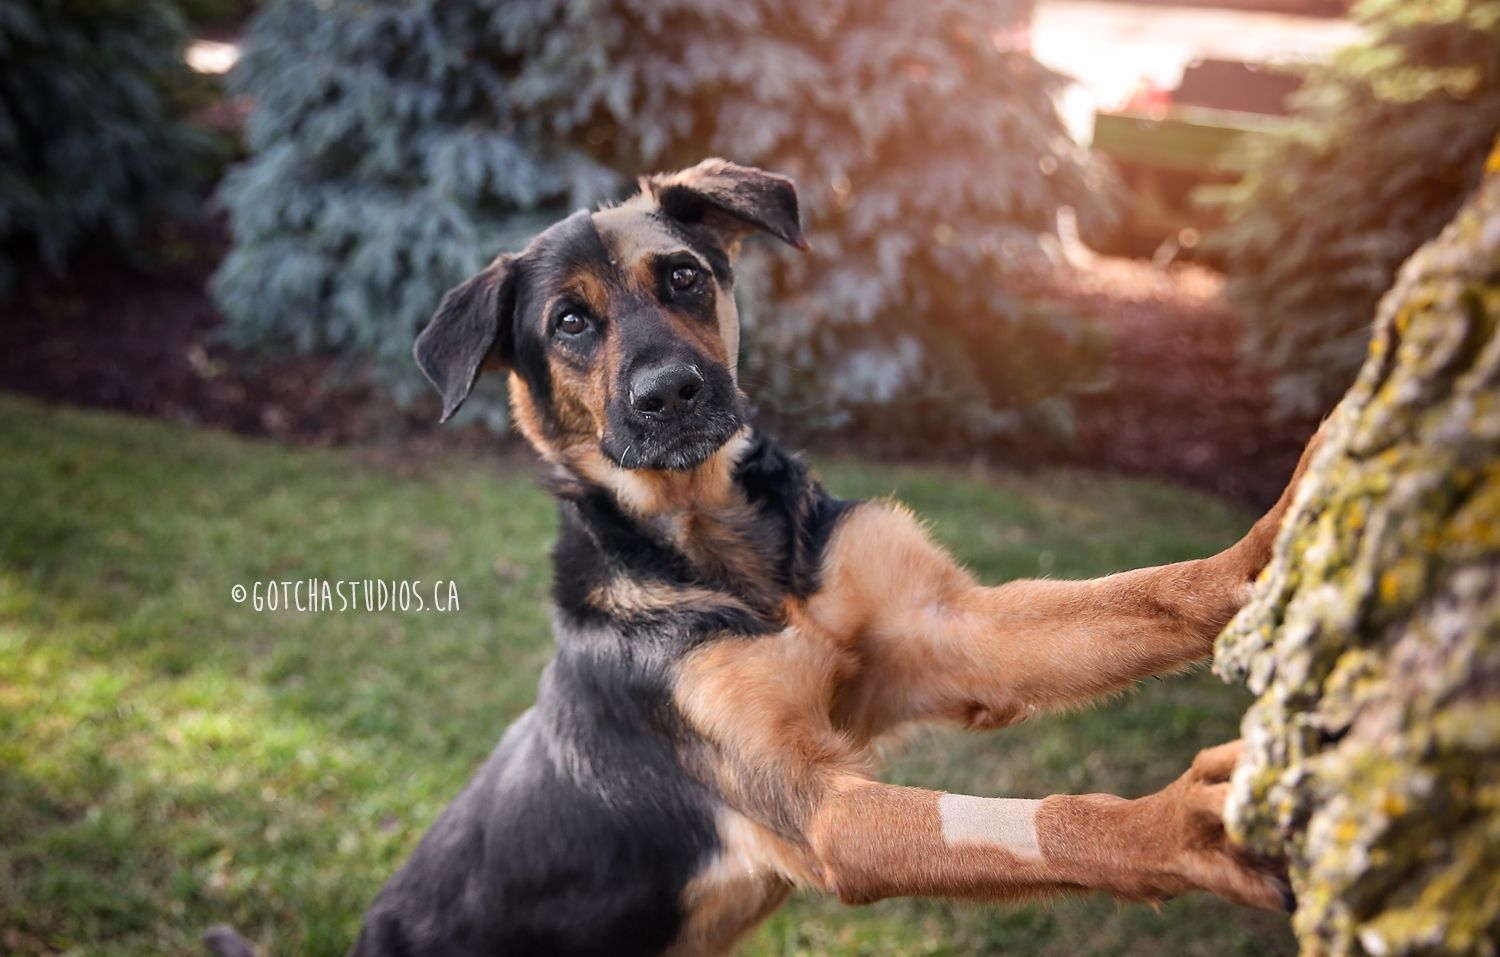 LEROY Dog Tales in King City, Ontario ADOPT OR FOSTER